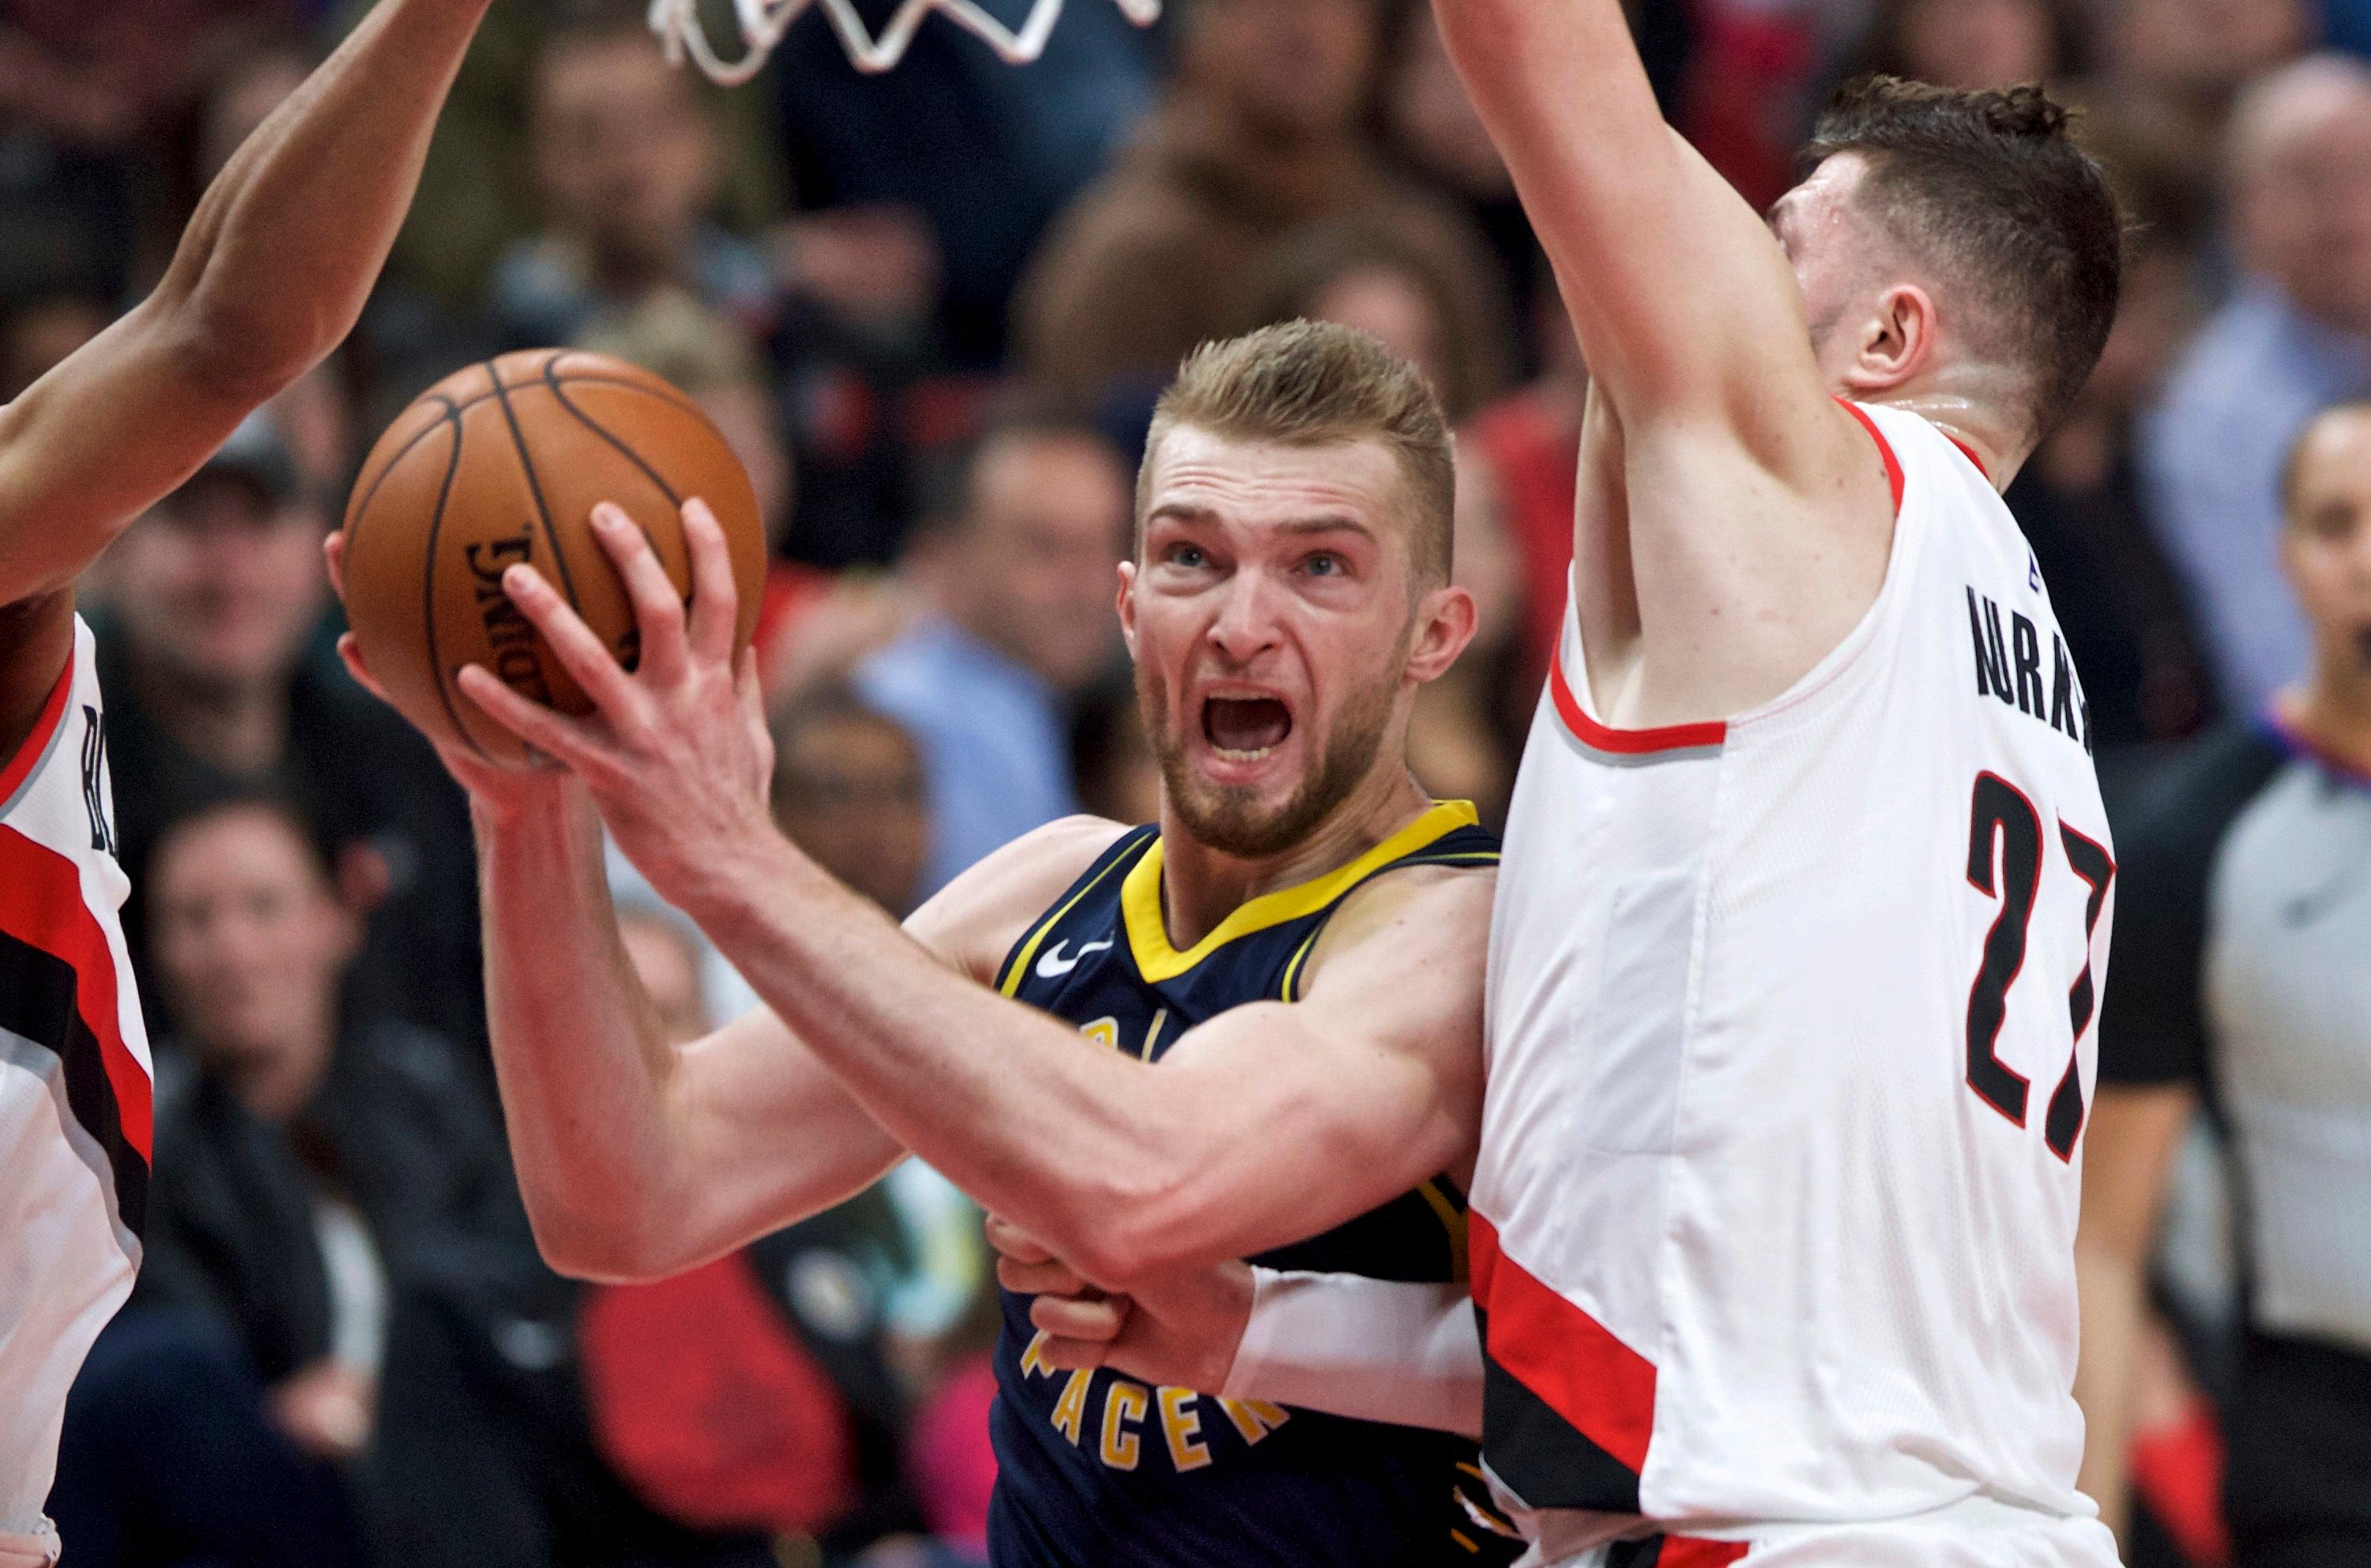 Indiana Pacers center Domantas Sabonis looks for a shot as Portland Trail Blazers center Jusuf Nurkic, right defends during the first half of an NBA basketball game in Portland, Ore., Thursday, Jan. 18, 2018. (AP Photo/Craig Mitchelldyer)